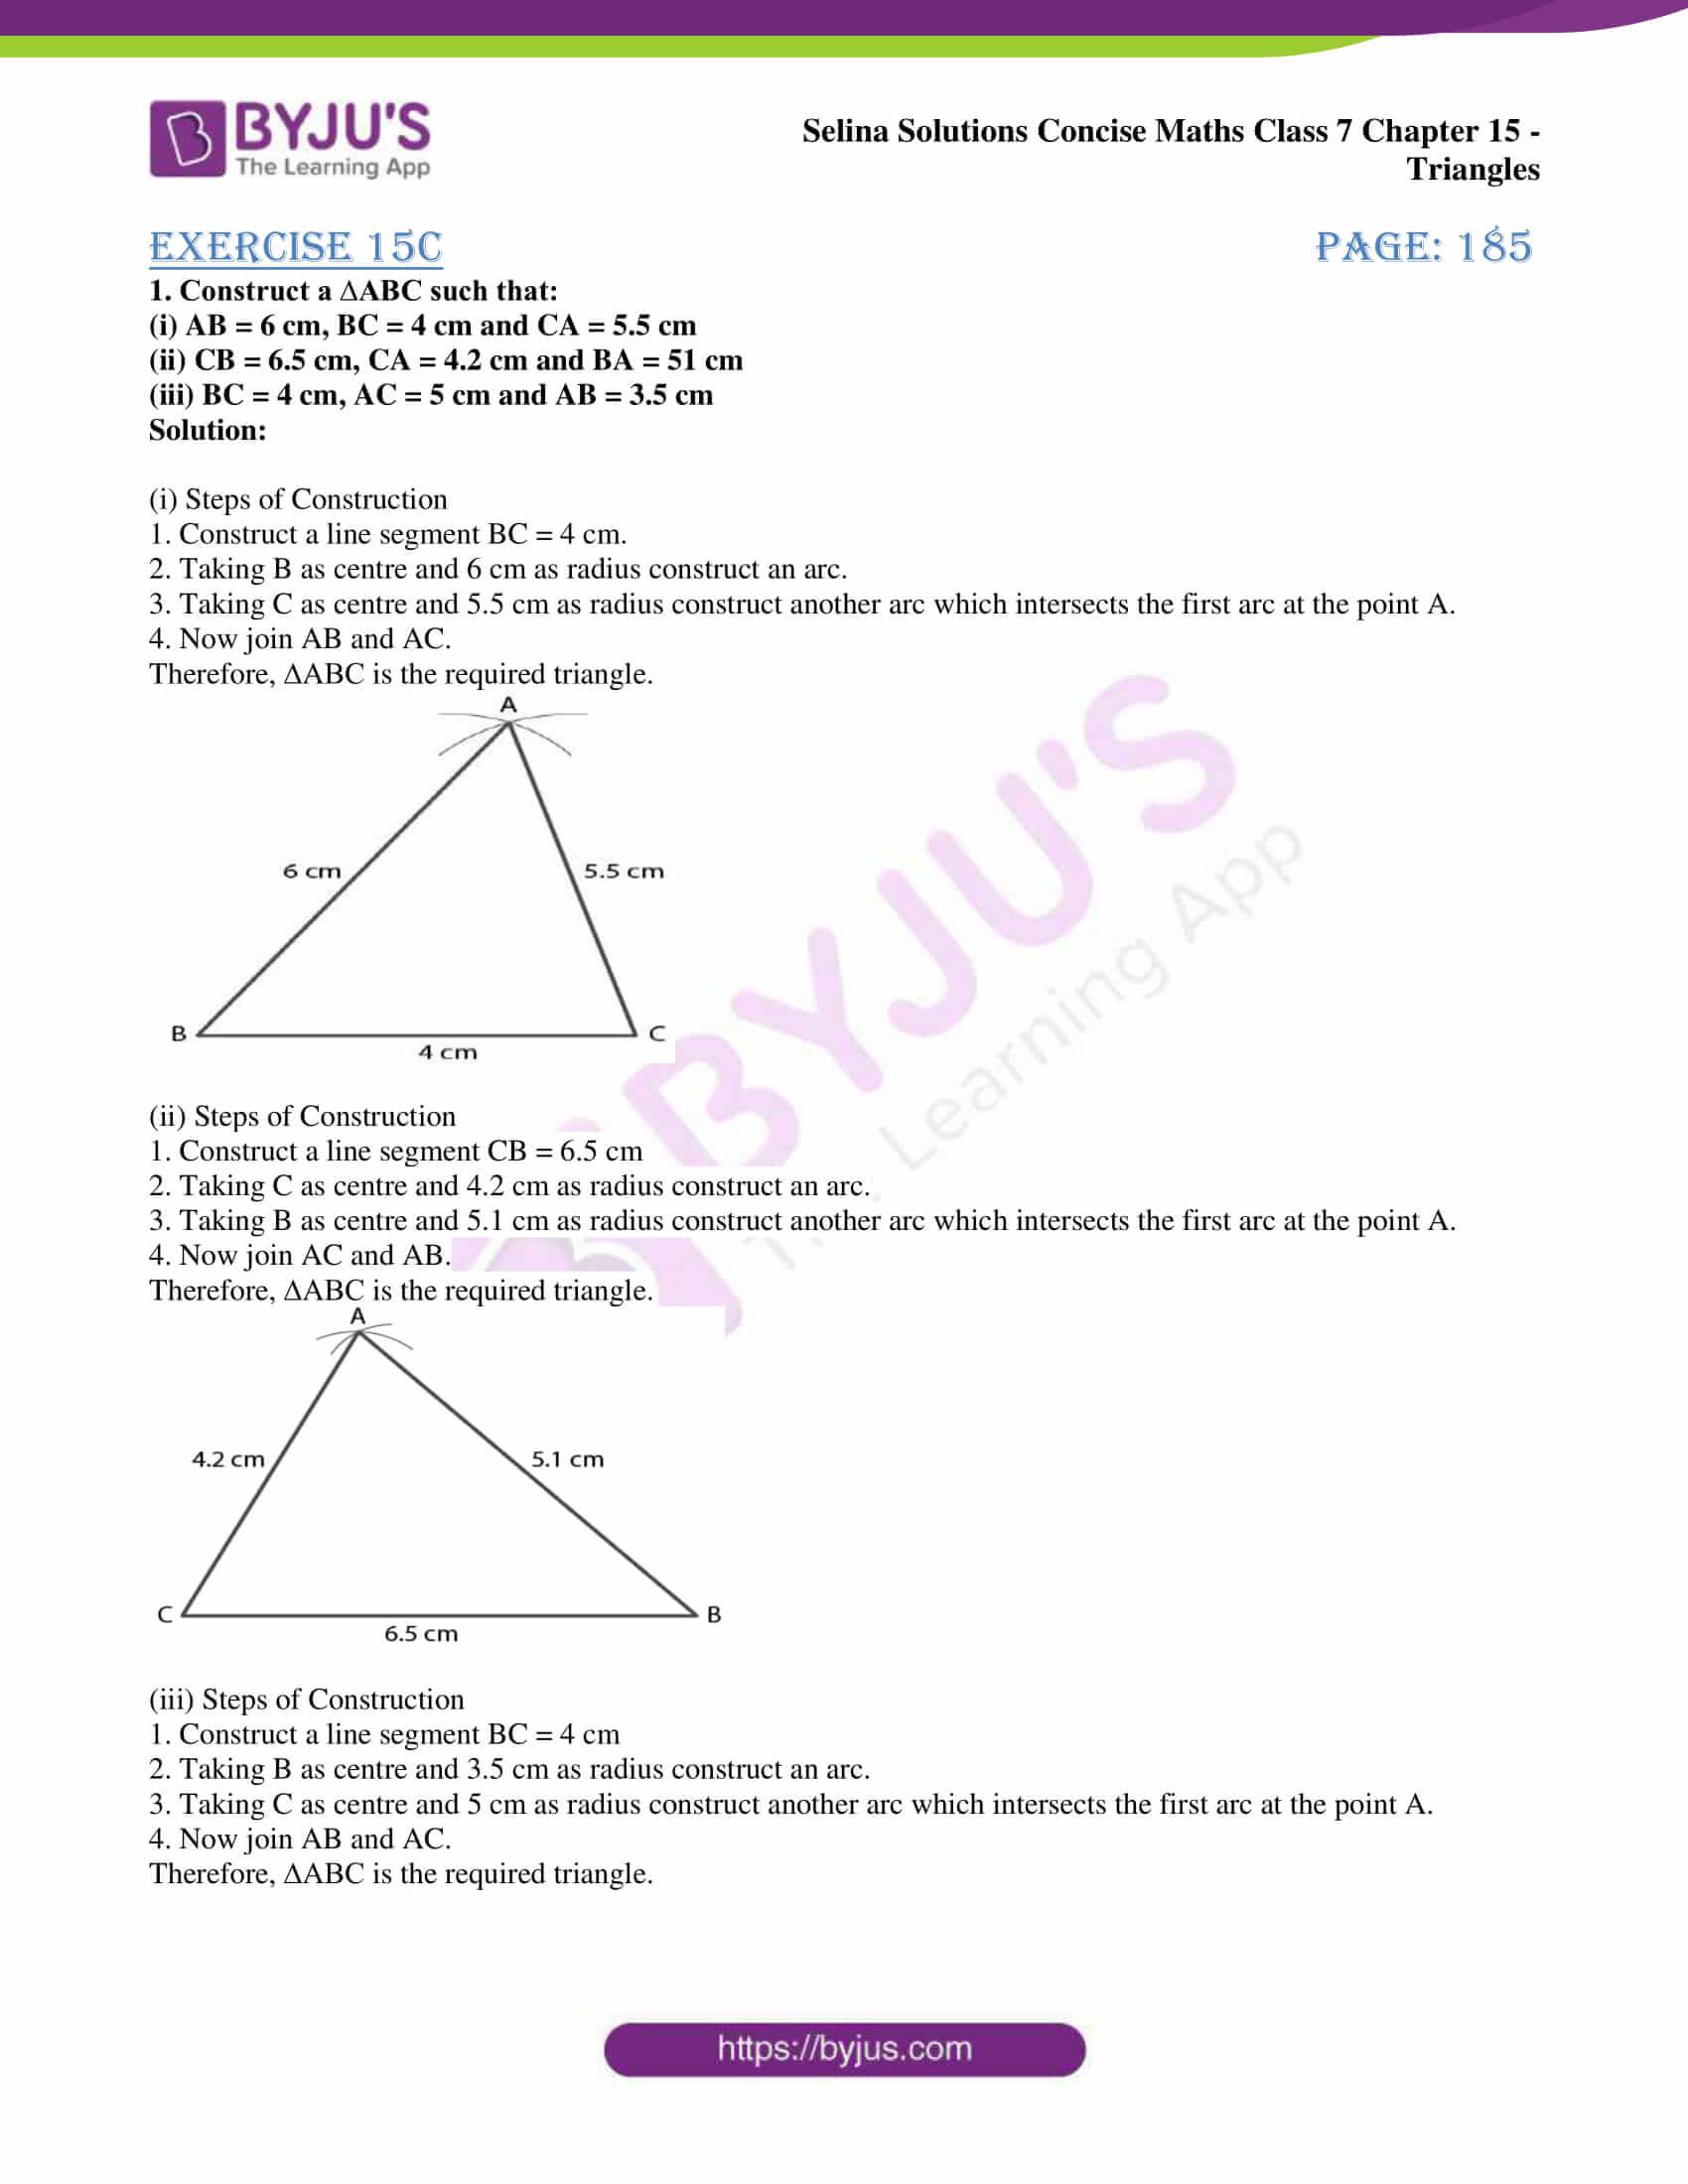 selina sol concise maths class 7 chapter 15 ex c 01